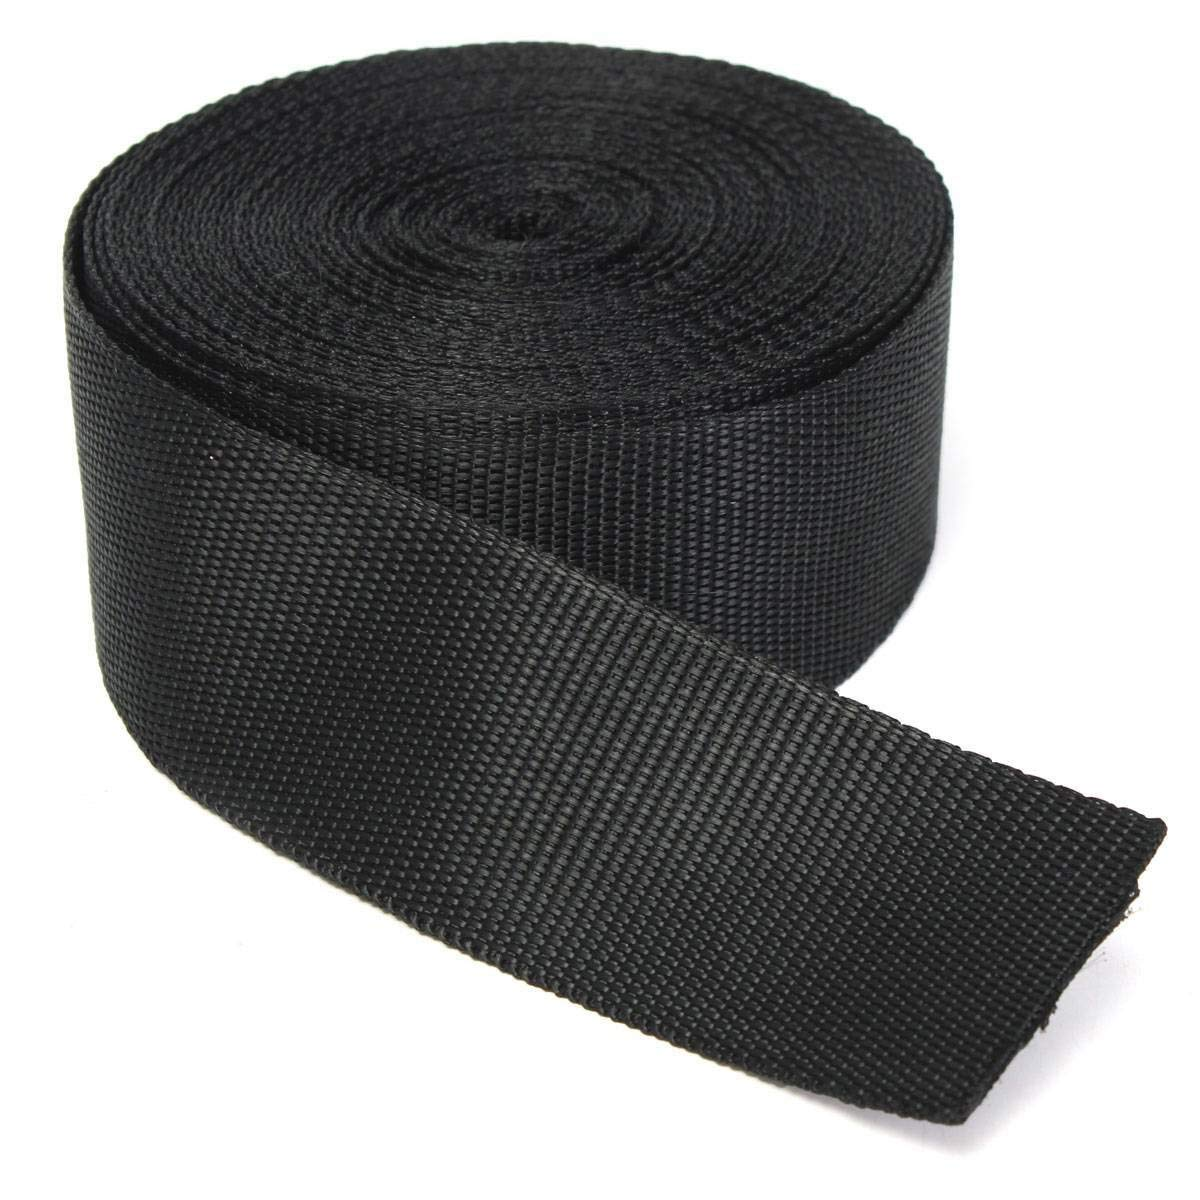 Outdoor Sports Learned Black 50mm 2 Inch Nylon Webbing X 10 Meters Buy 2 Get One Free